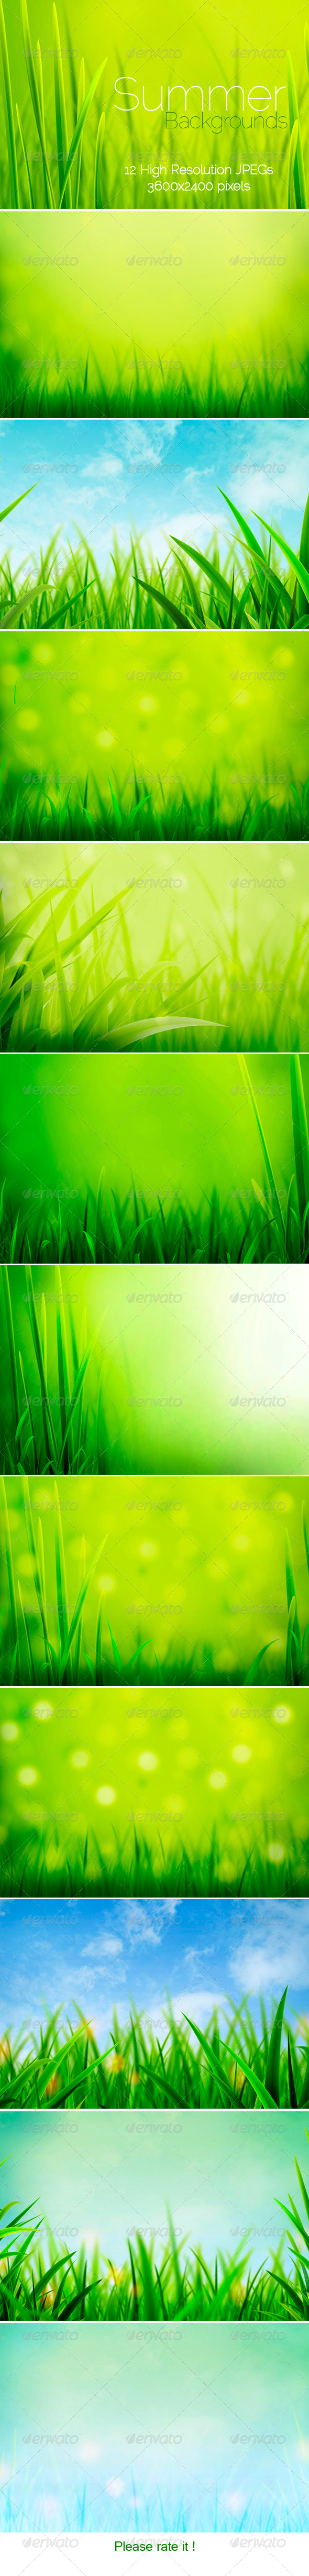 GraphicRiver Summer Backgrounds 4239771